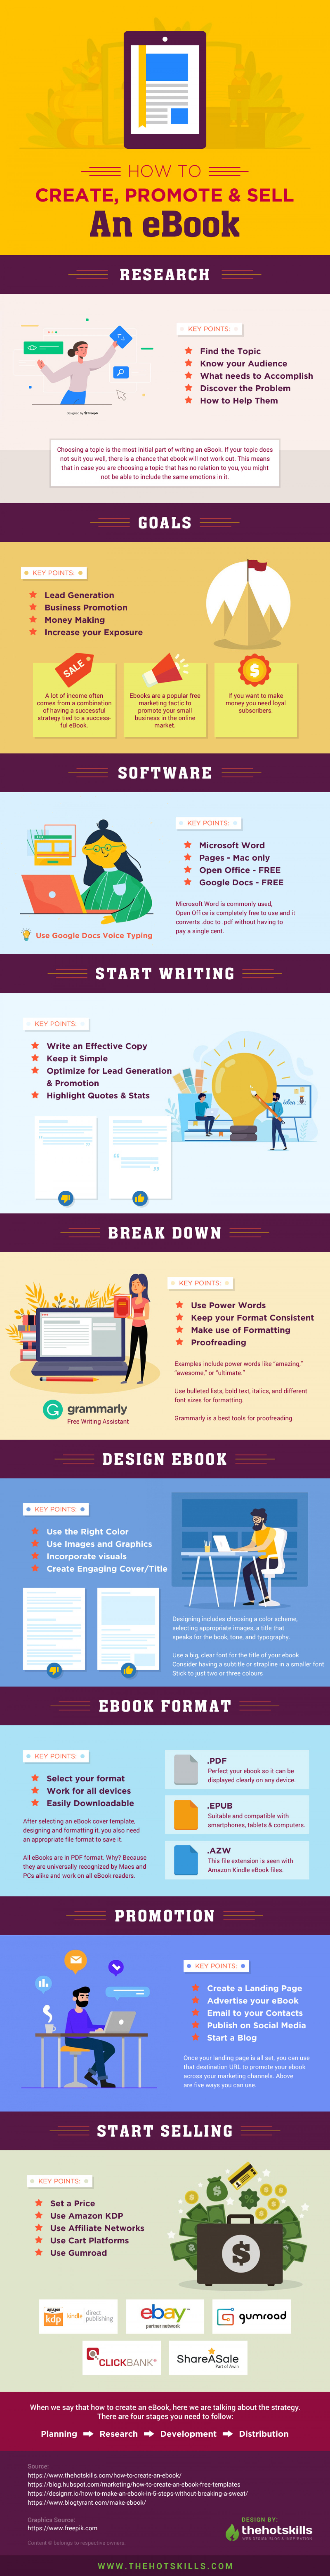 How to Create an eBook Infographic Infographic